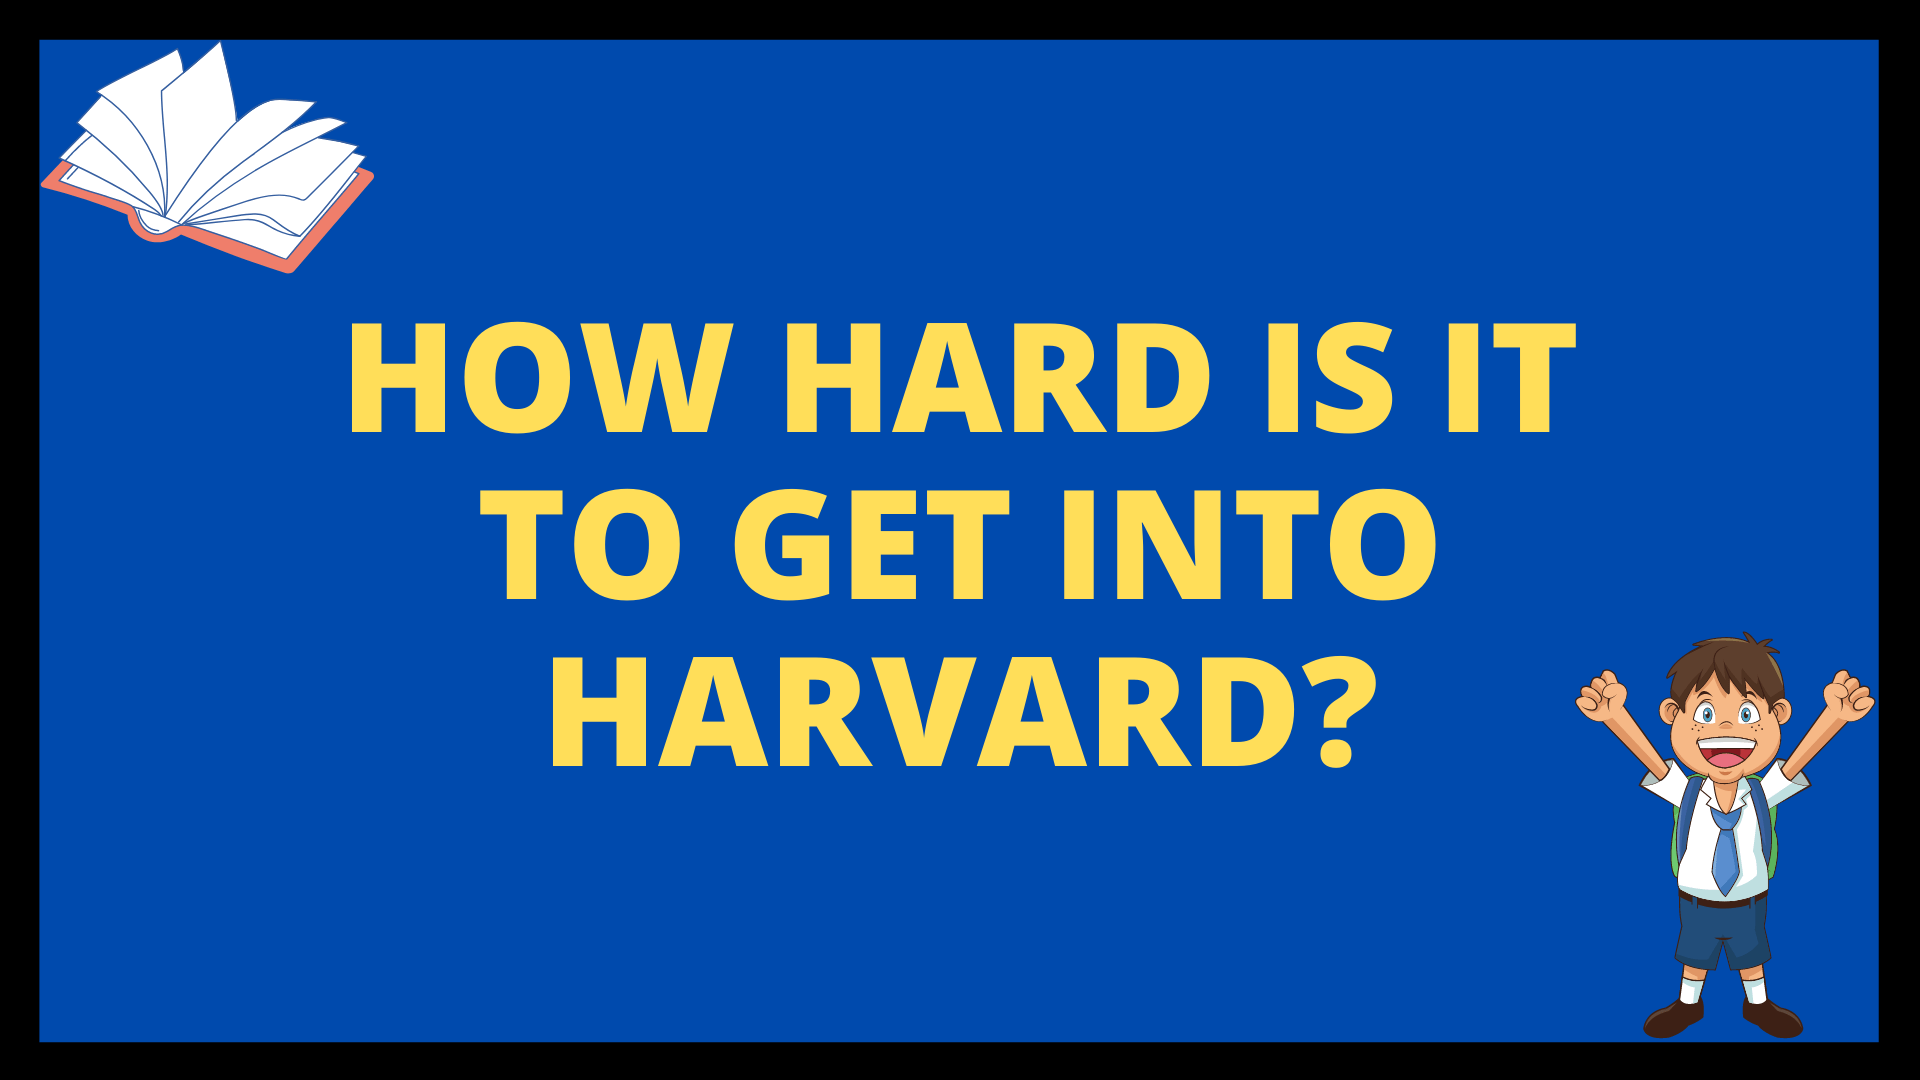 How Hard is it to get into Harvard?